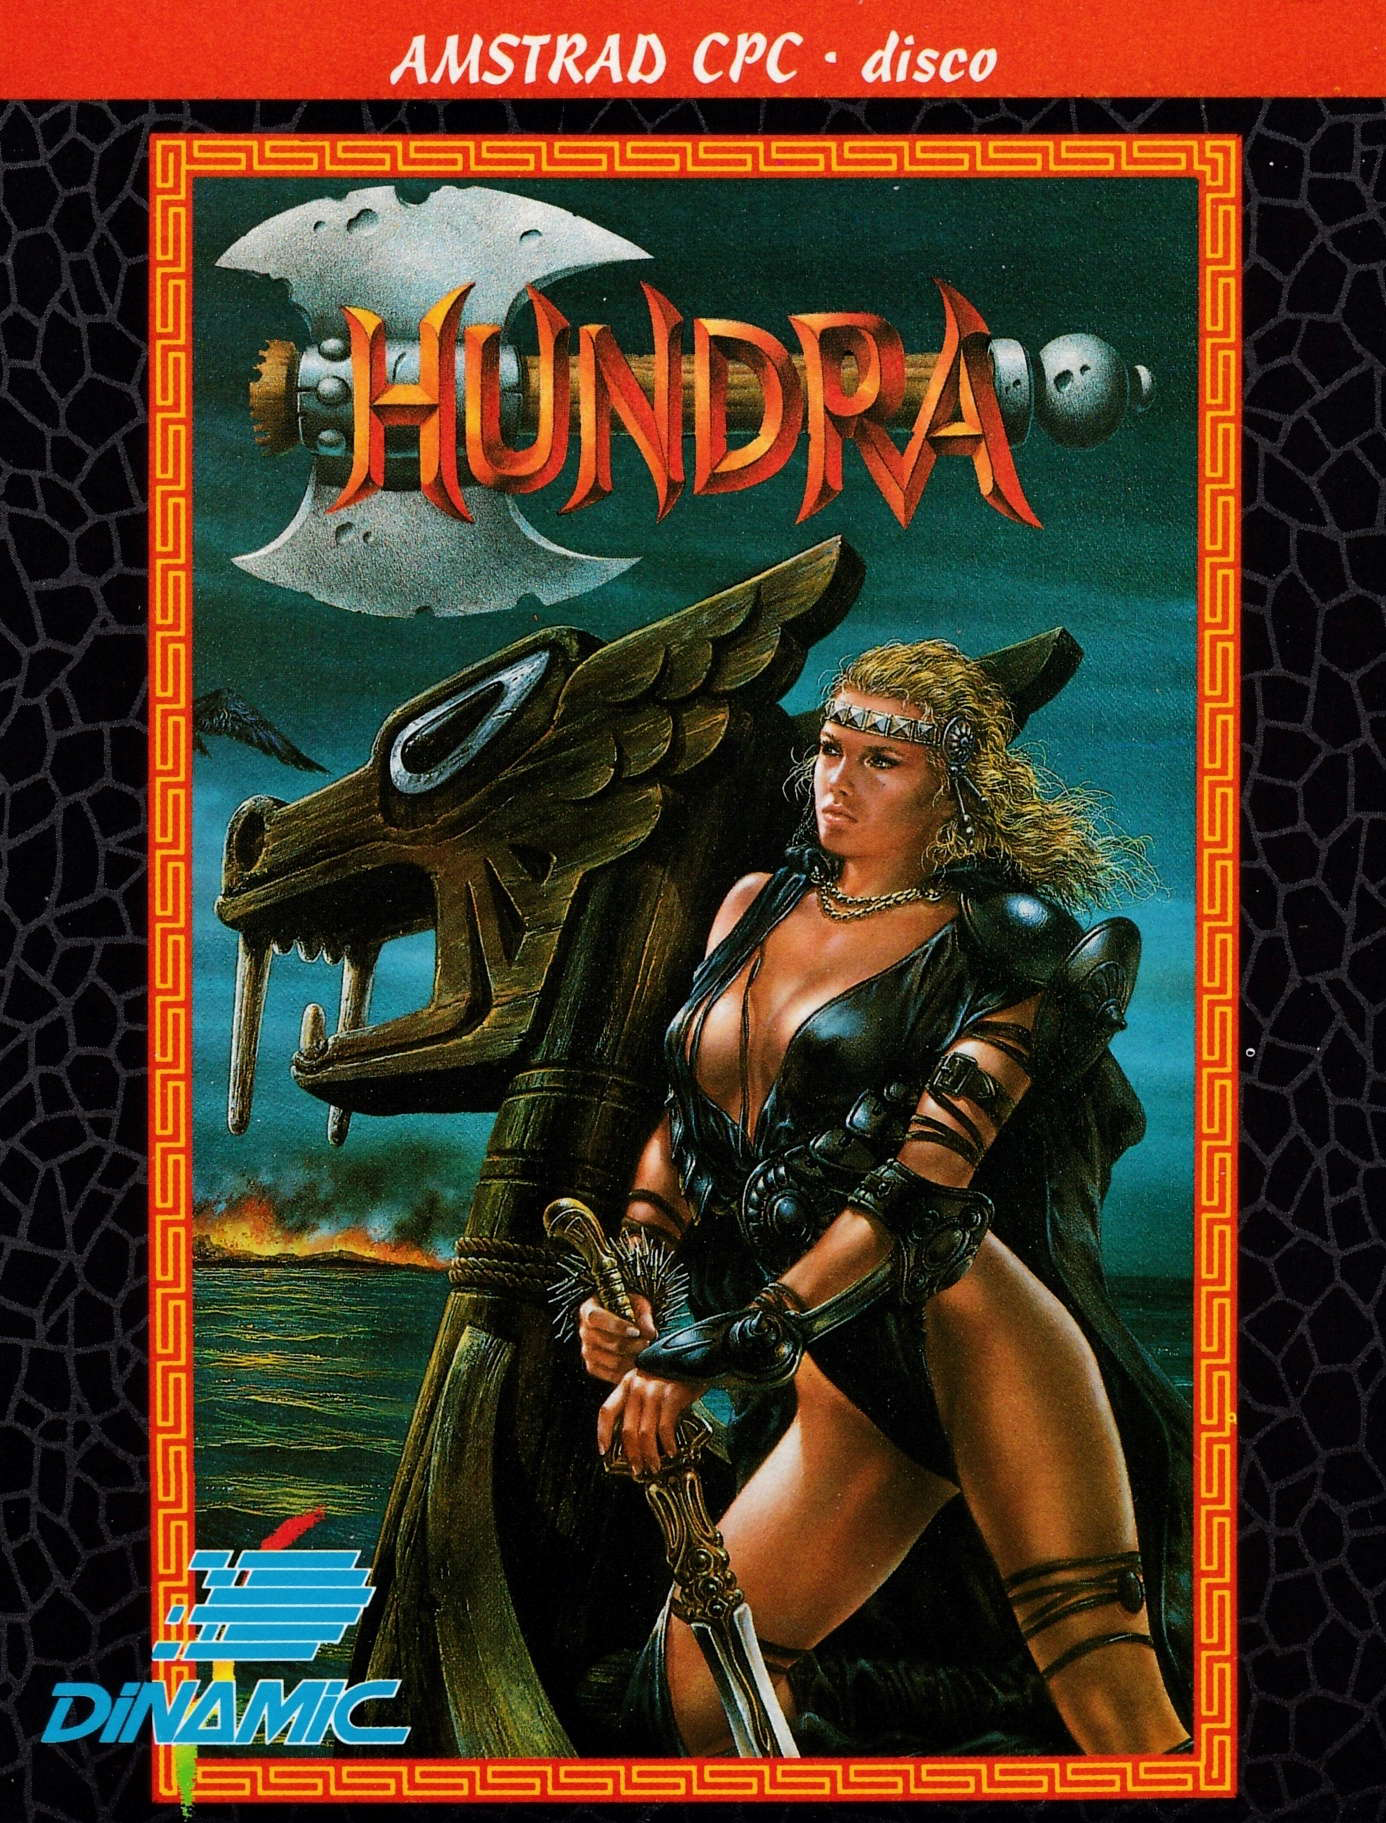 cover of the Amstrad CPC game Hundra  by GameBase CPC